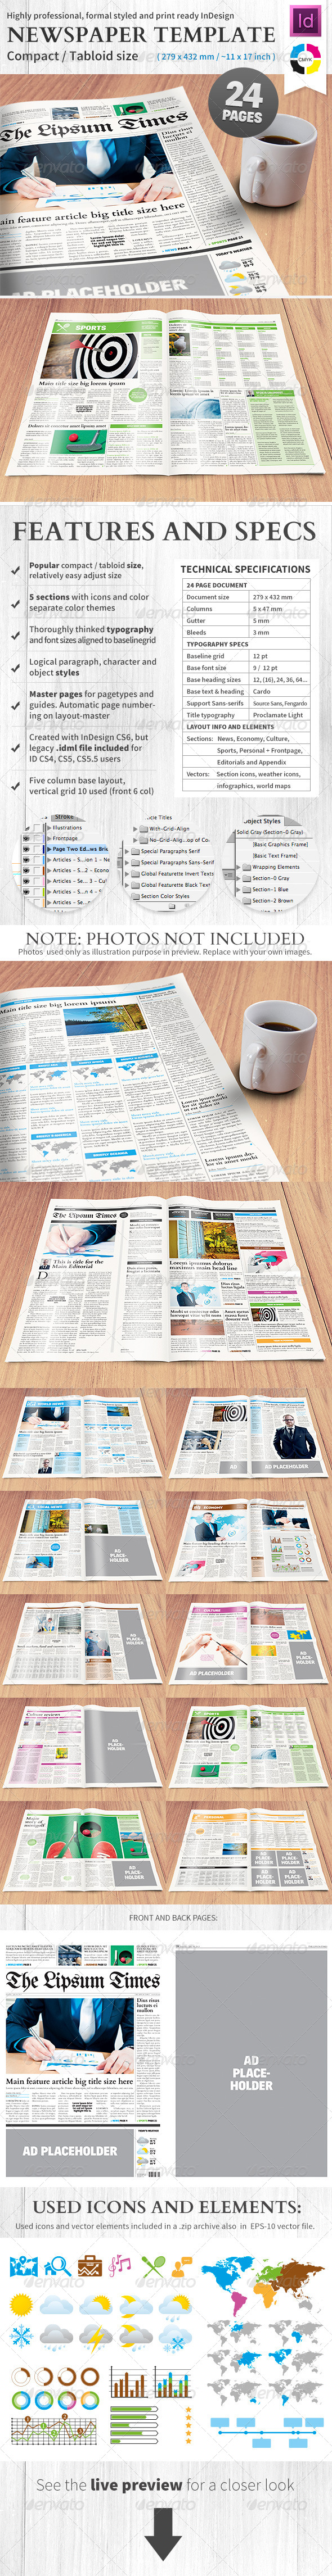 Newspaper Template Compact Tabloid Size - 24 Page #GraphicRiver ...